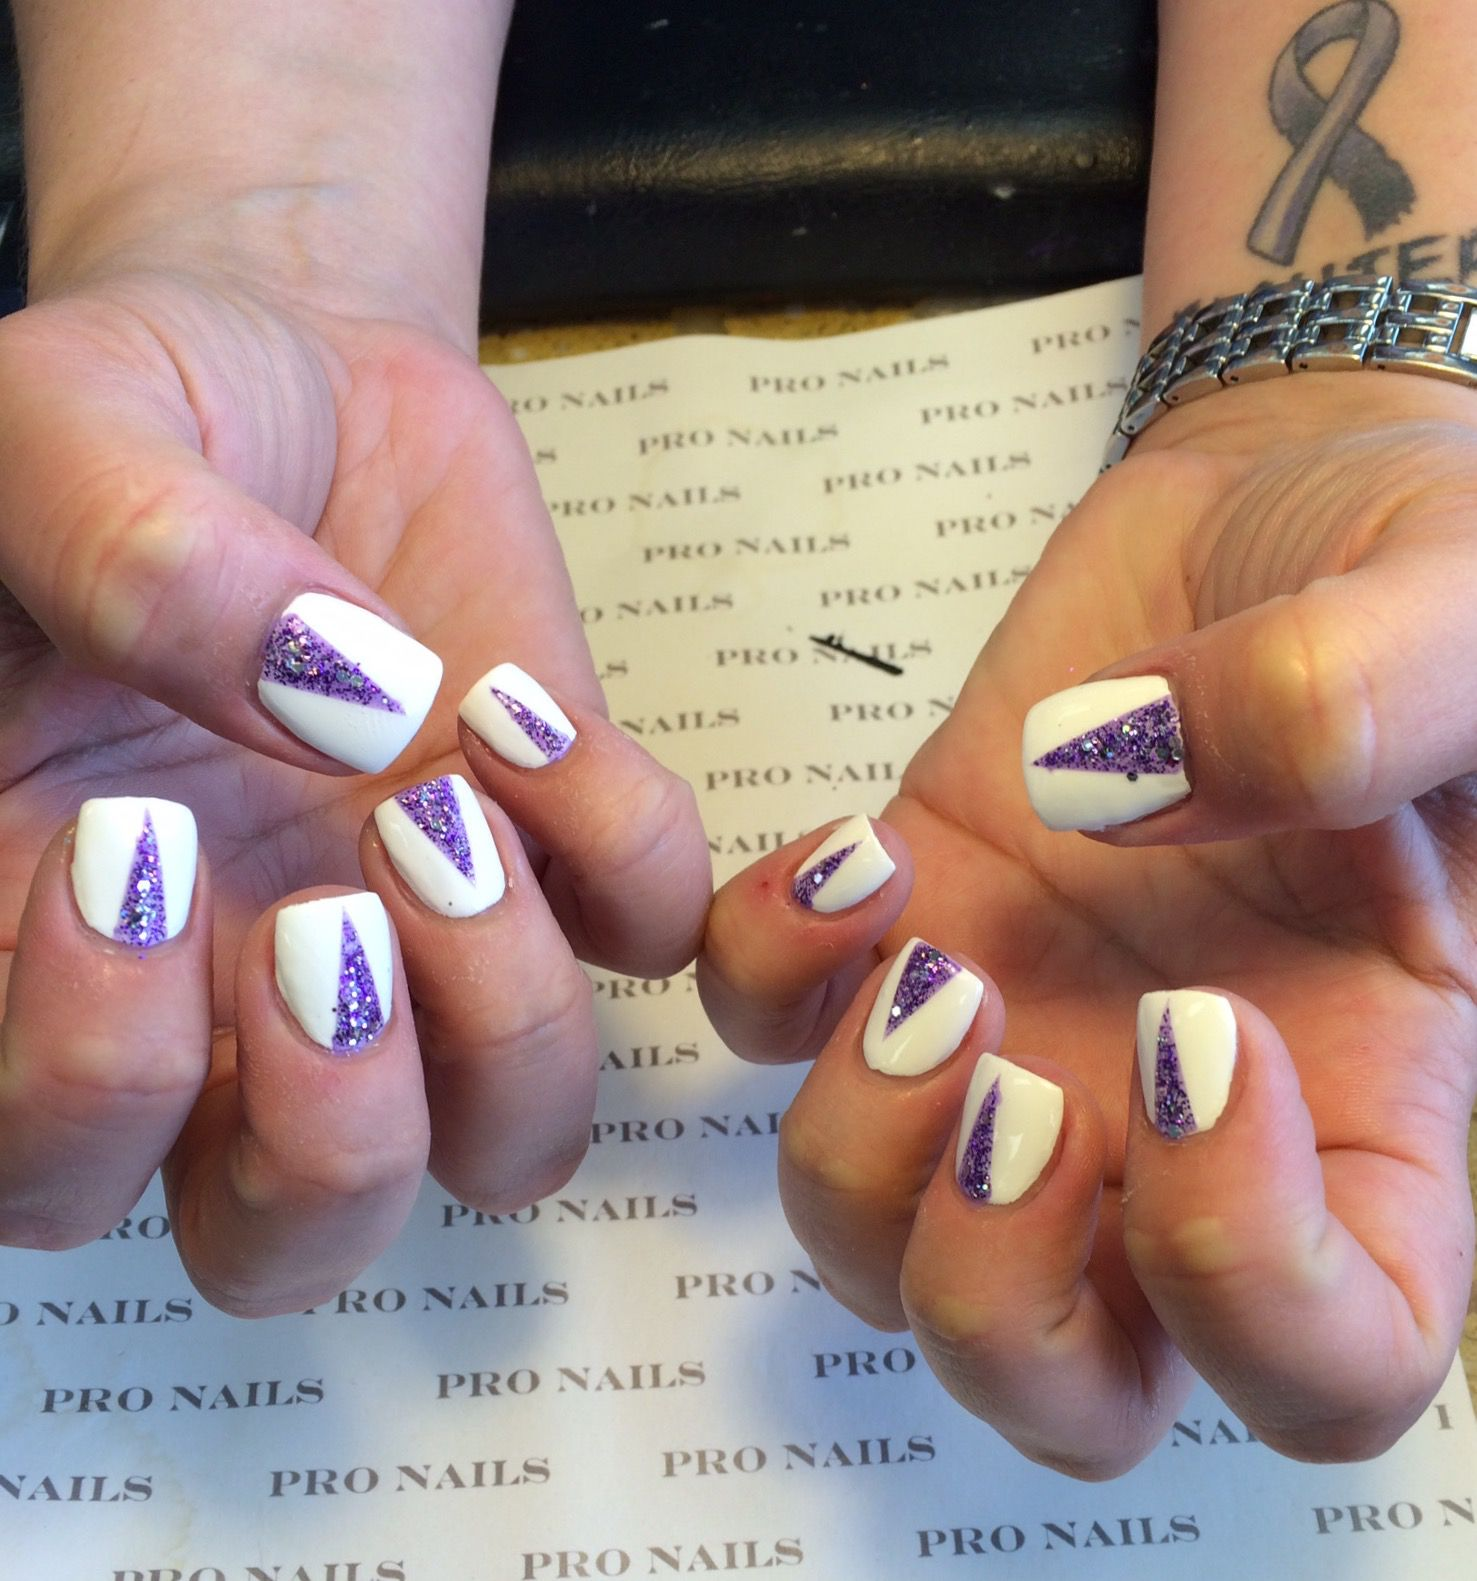 Triangle Nails Designs Pro Nails Pro Nails Pinterest